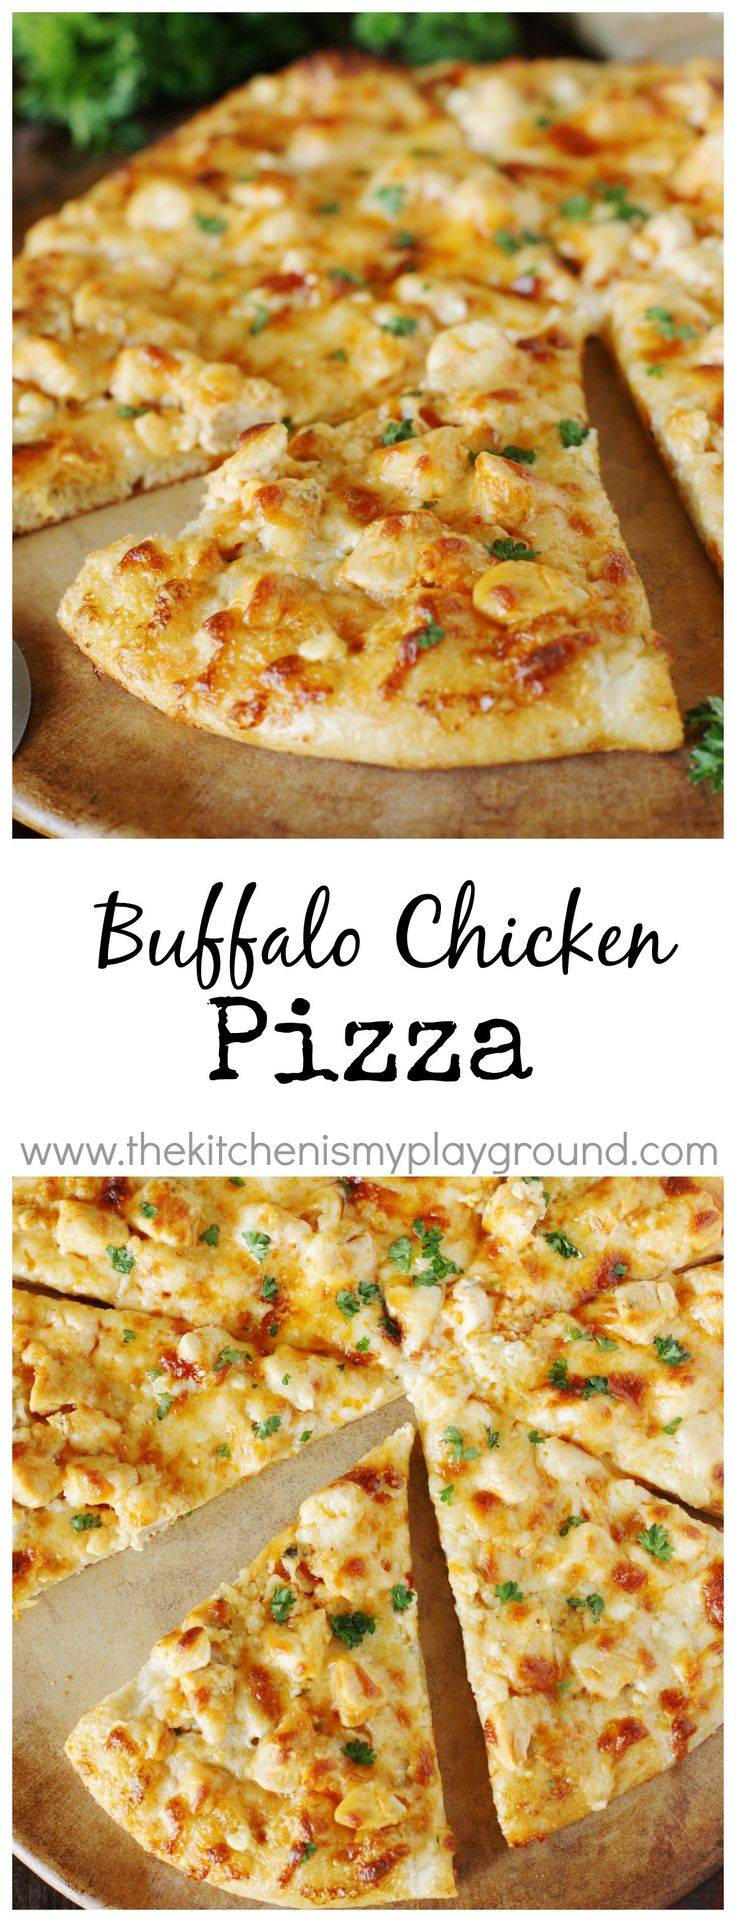 Buffalo Chicken Pizza ~ All the great taste of traditional Buffalo wings ... without the mess!    www.thekitchenismyplayground.com